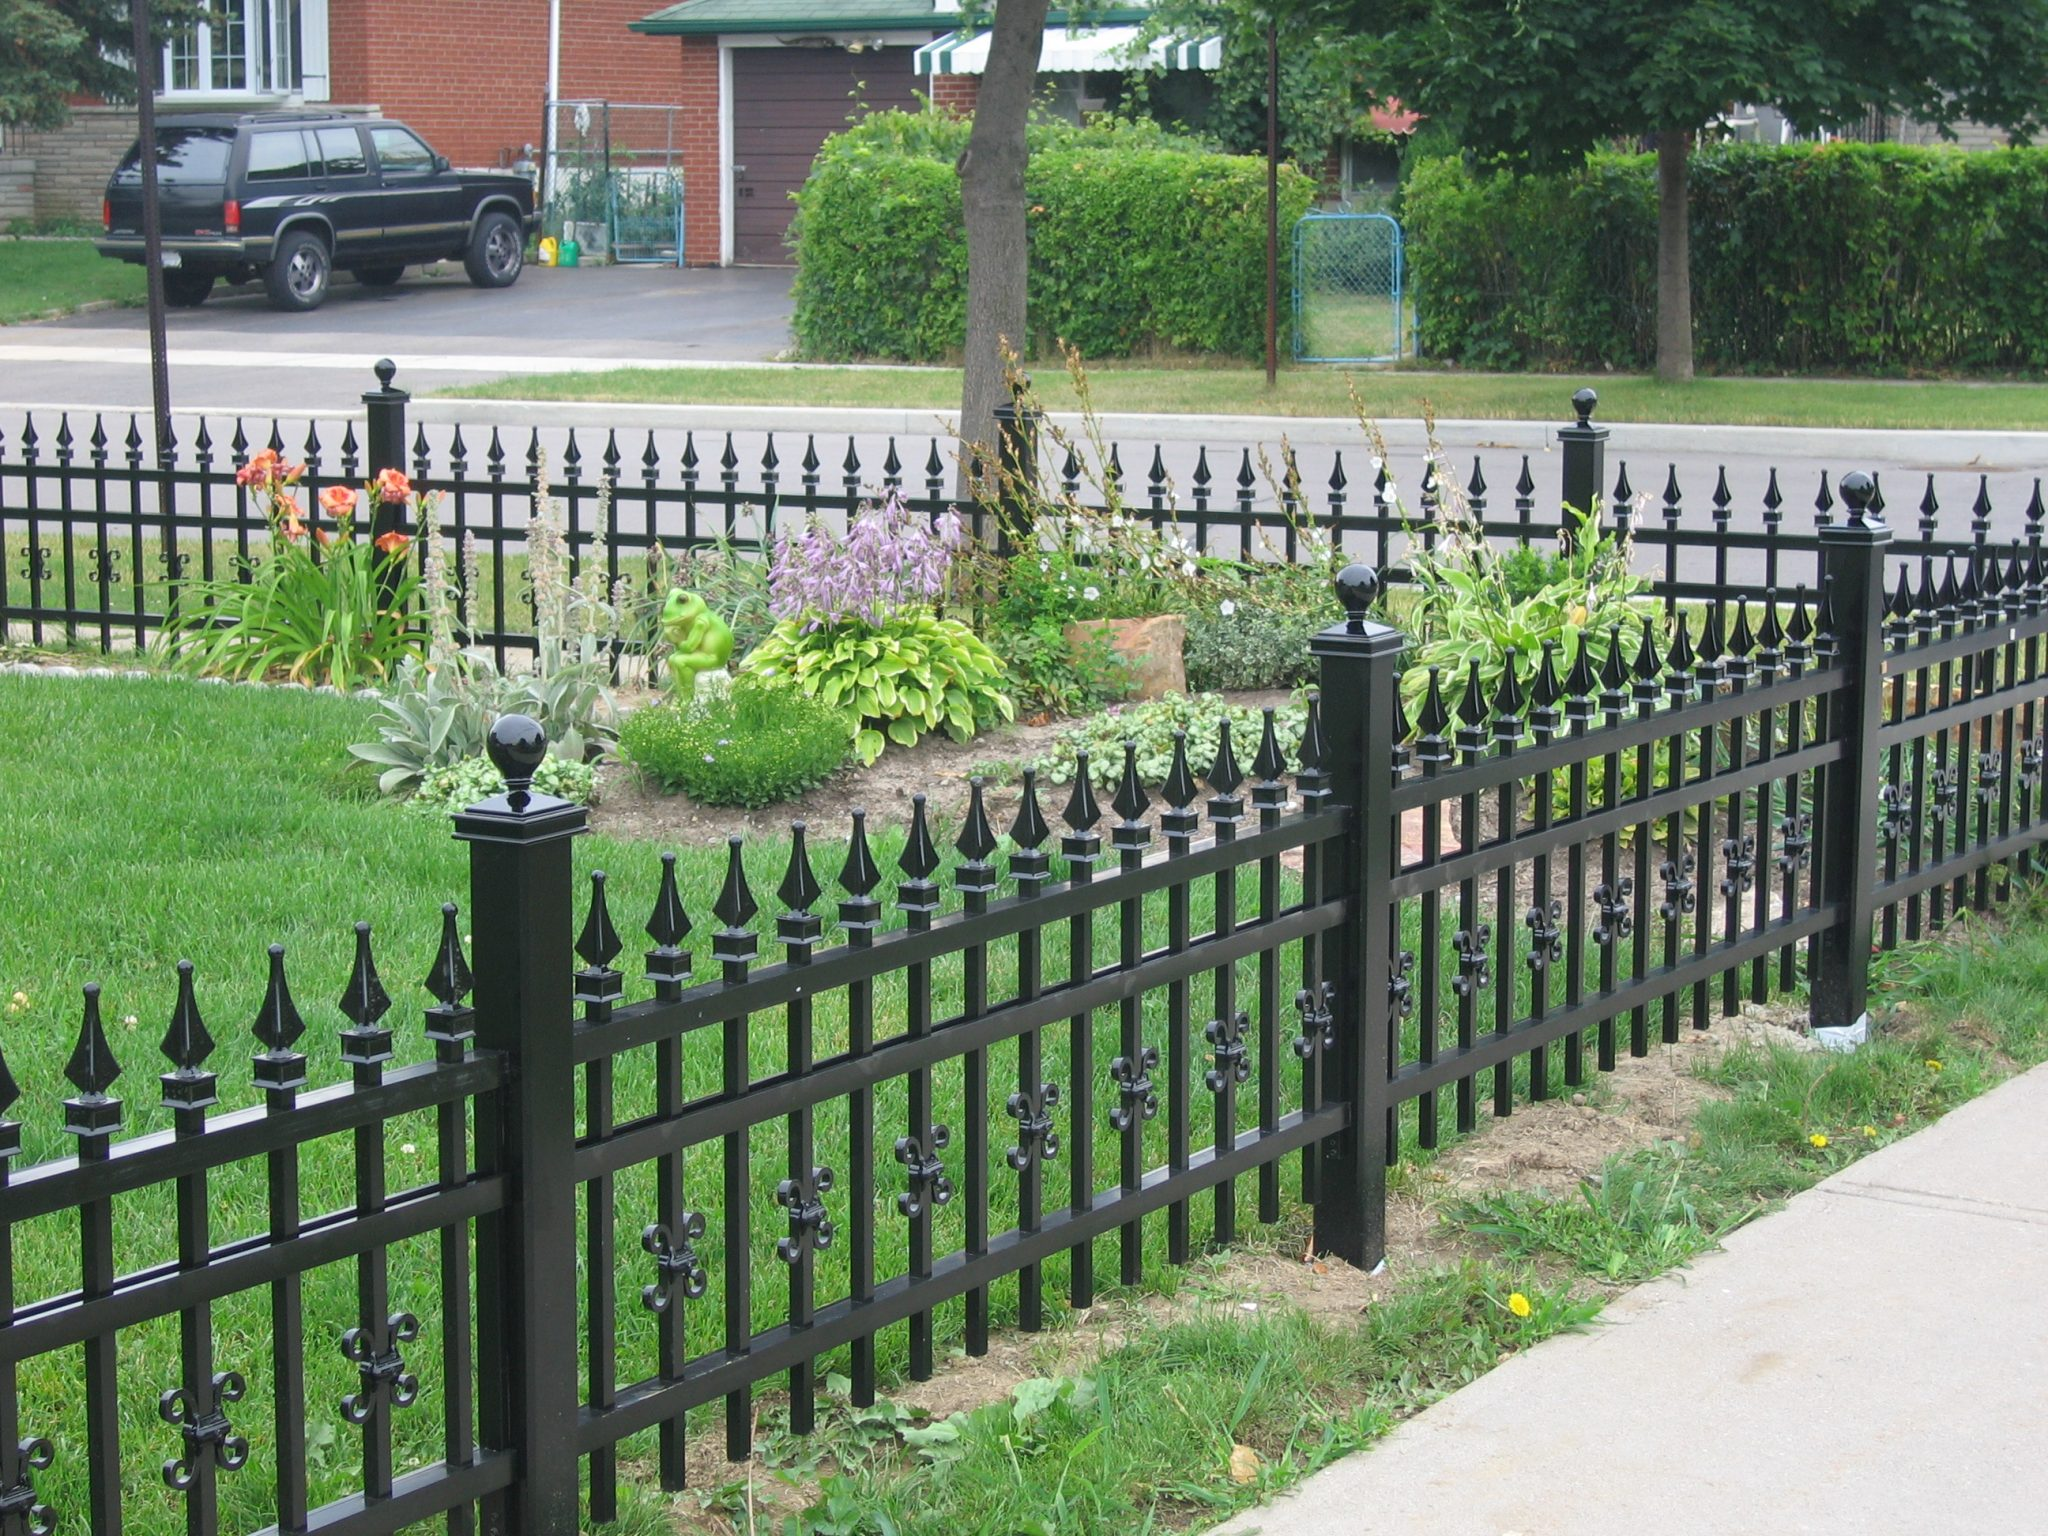 Fencing at front of home